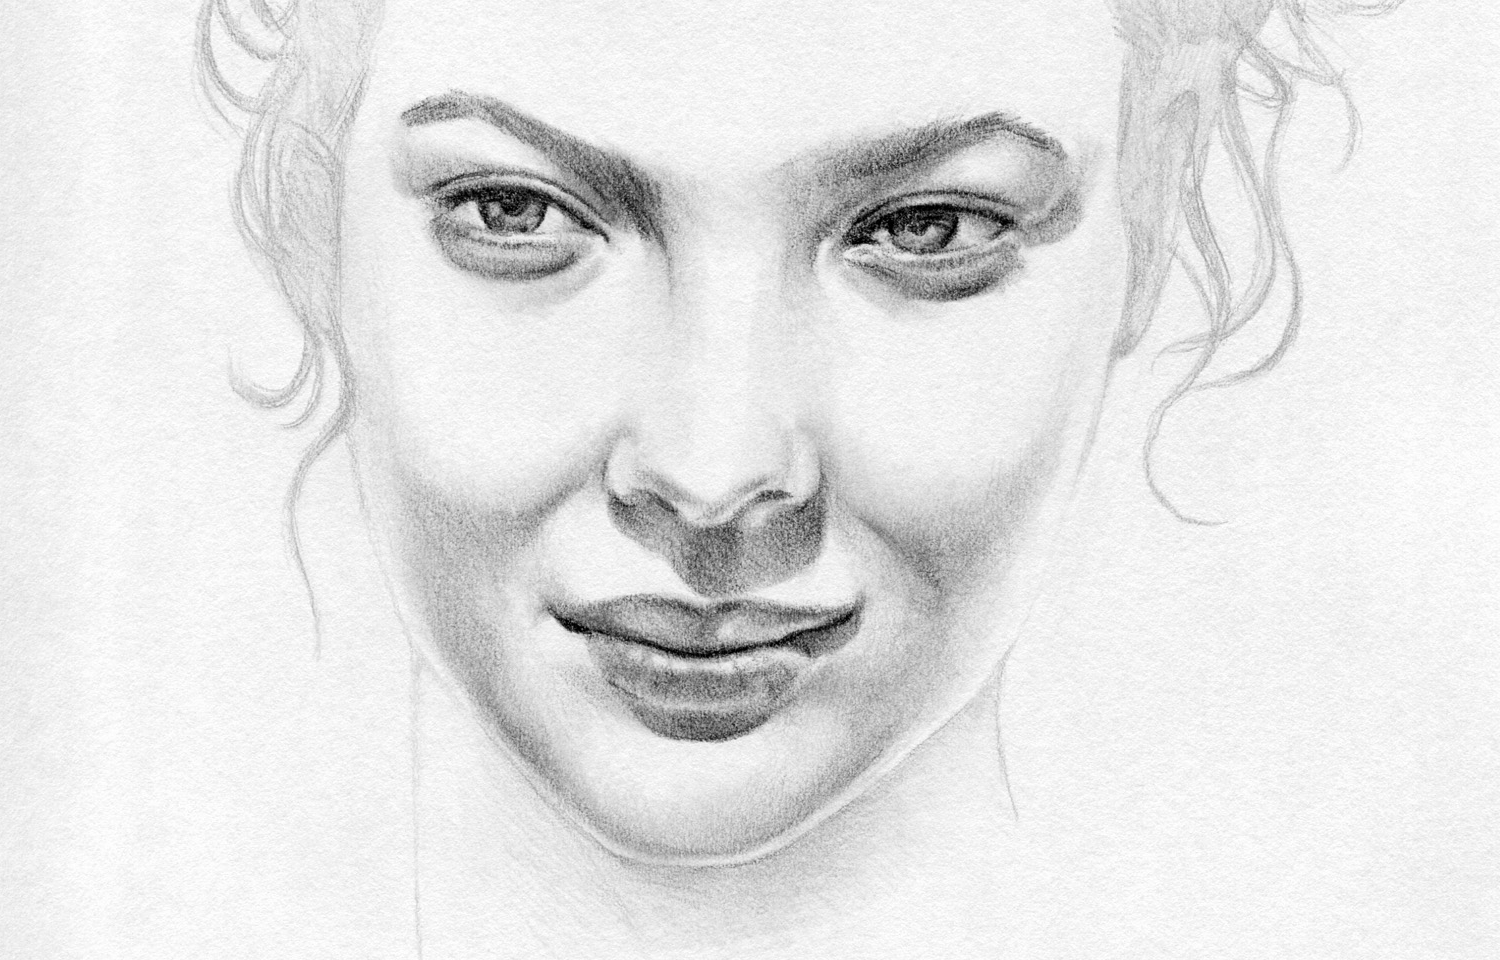 Drawn portrait simple pencil Sketches And Drawing Drawing Pencil